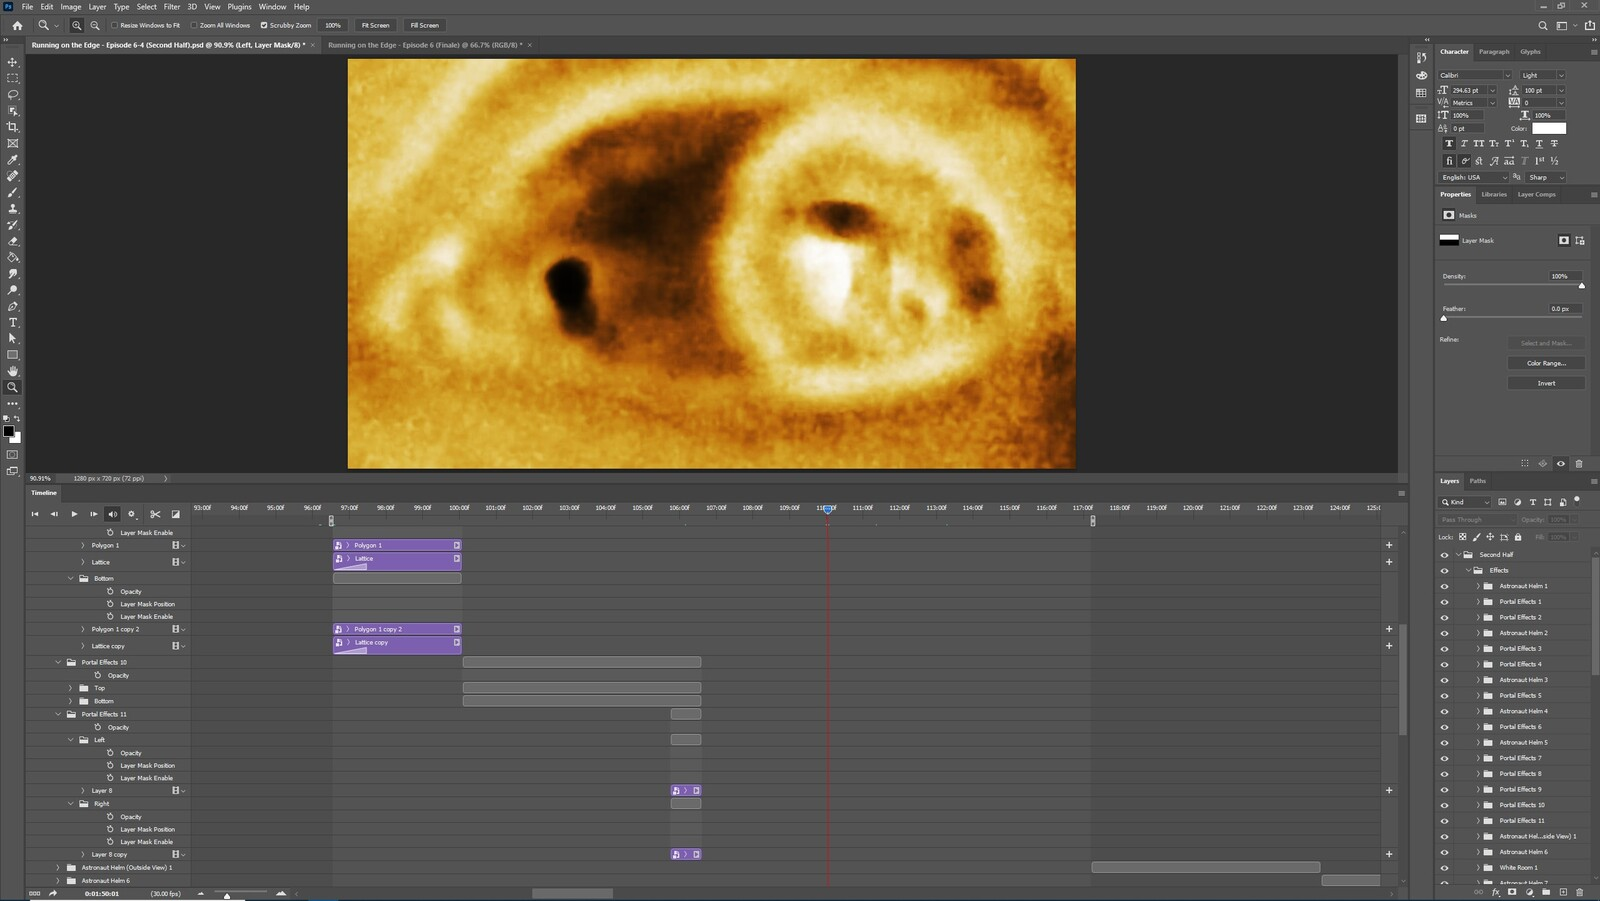 """The """"2020: A Time Oddity, Part 5"""" visual effect within Photoshop video editor"""